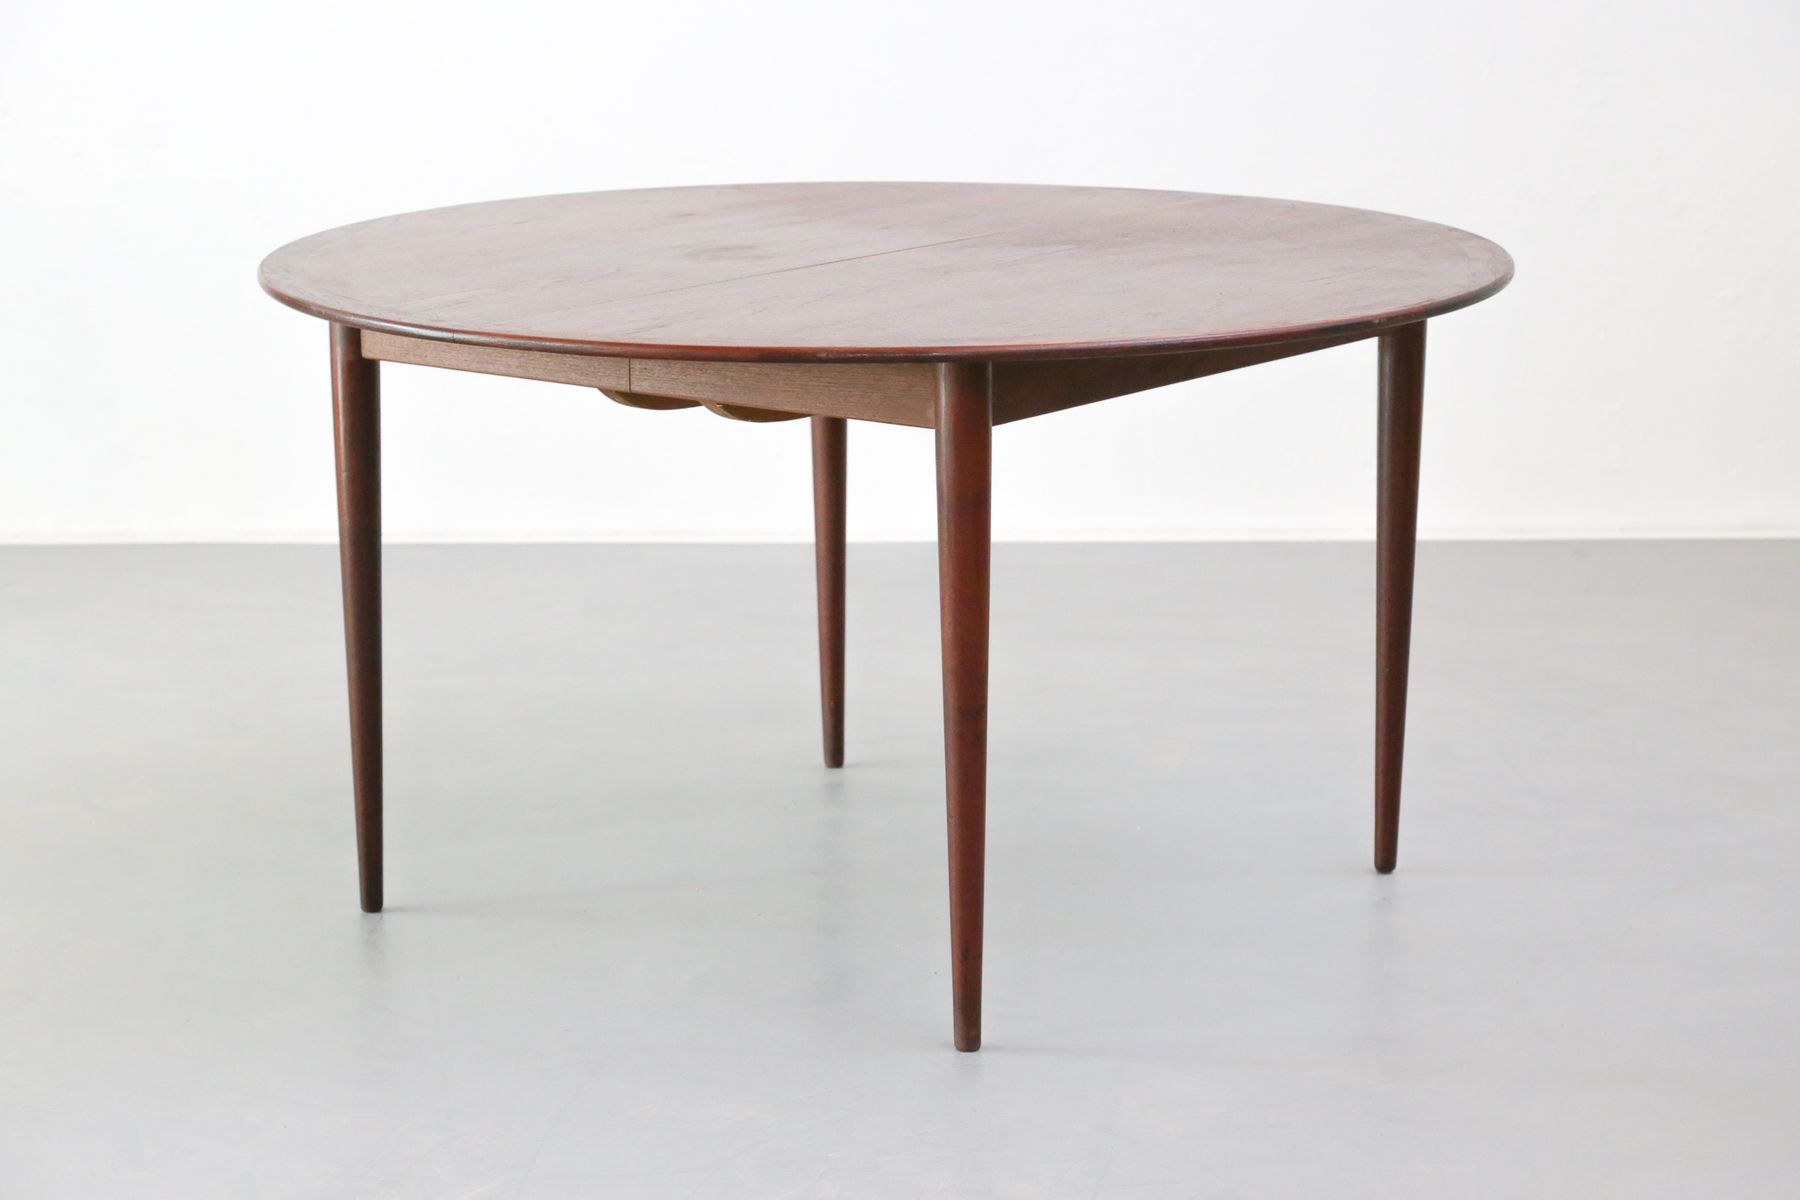 Large round danish dining table 1960s for sale at pamono for Large round dining table